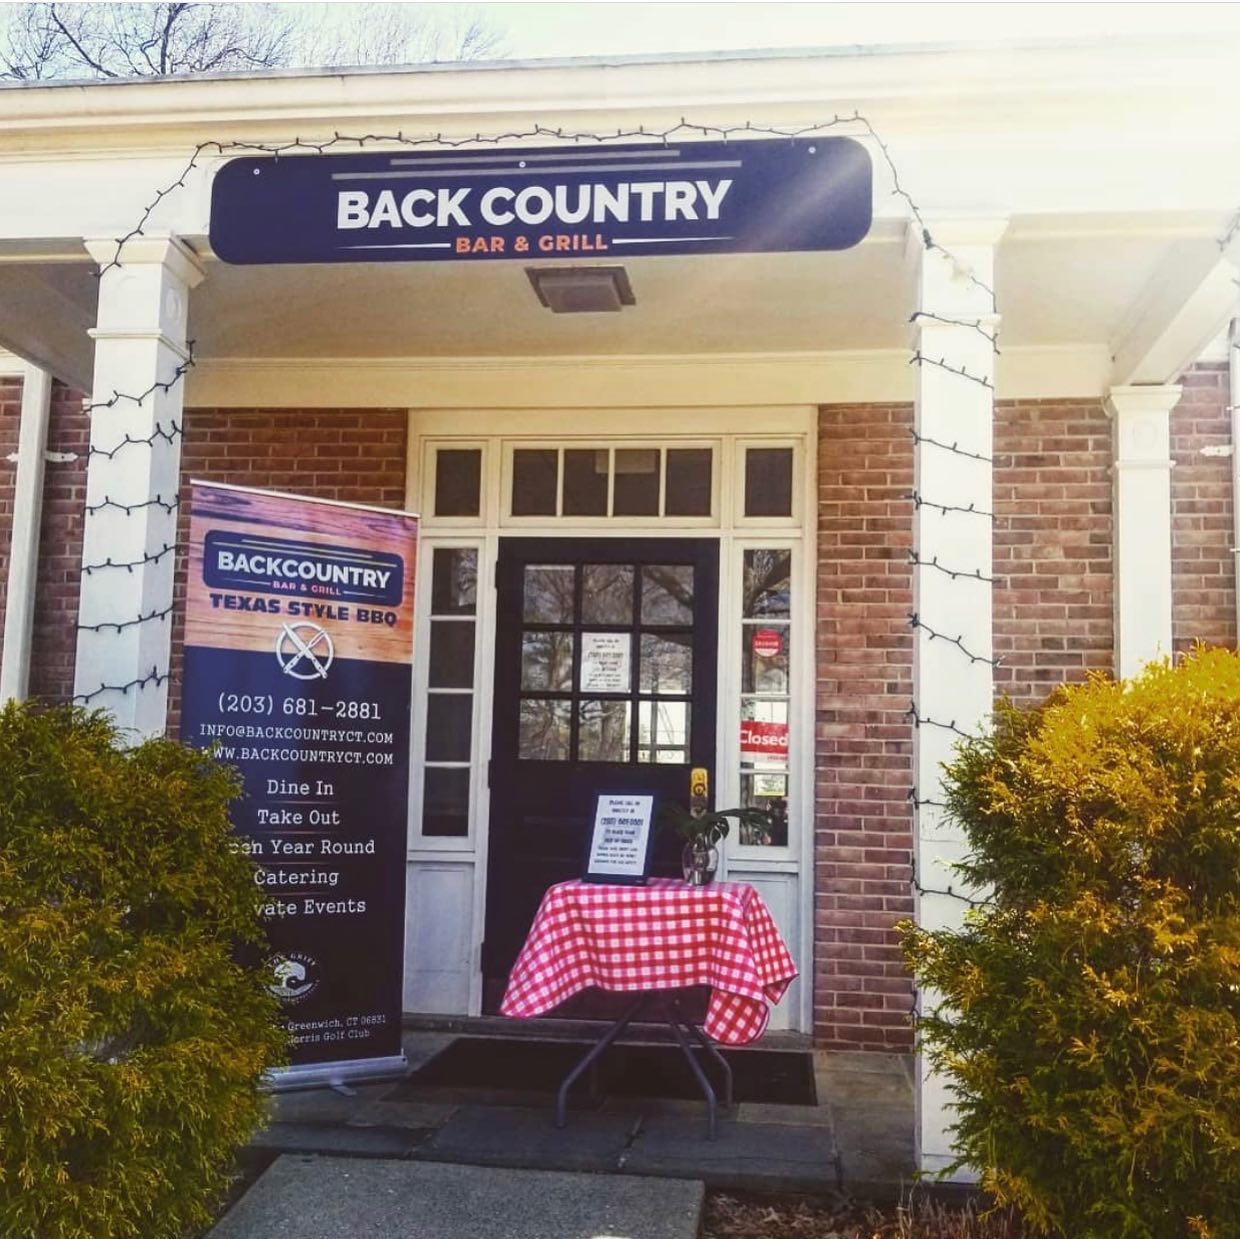 New Restaurant in Greenwich: Backcountry Bar and Grill